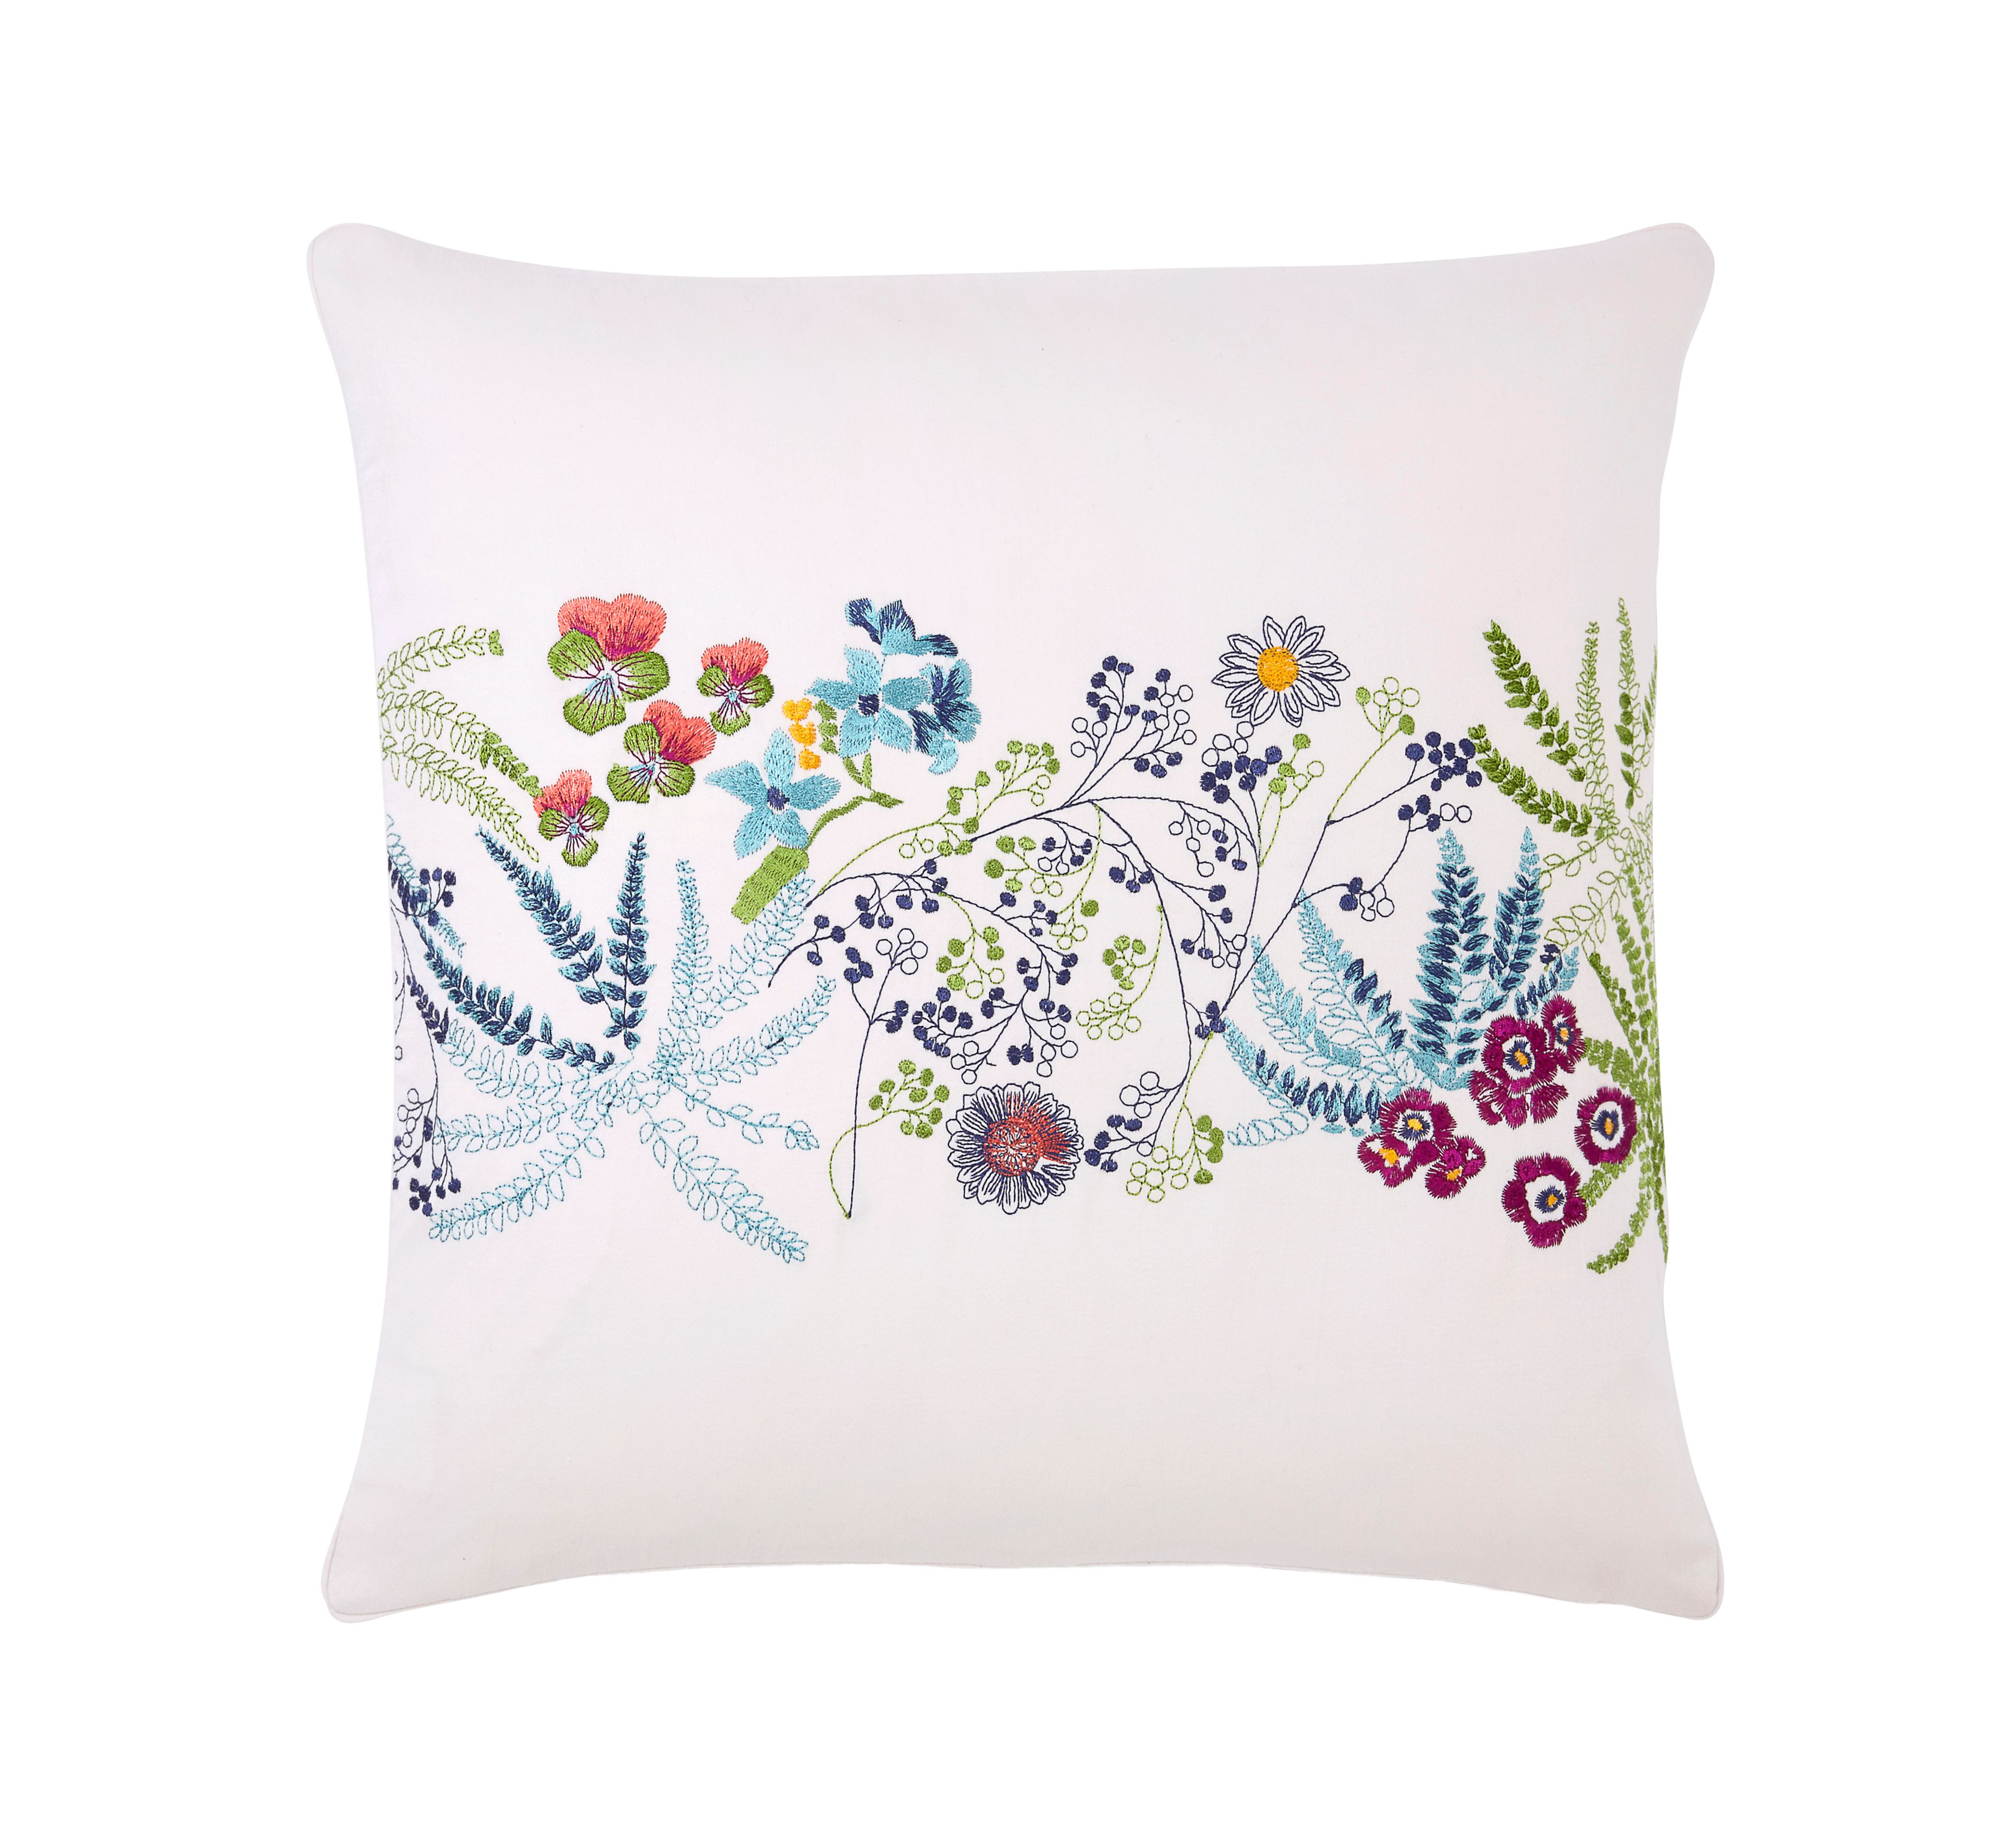 Yves Delorme Yves Delorme Enfleur square cushion cover